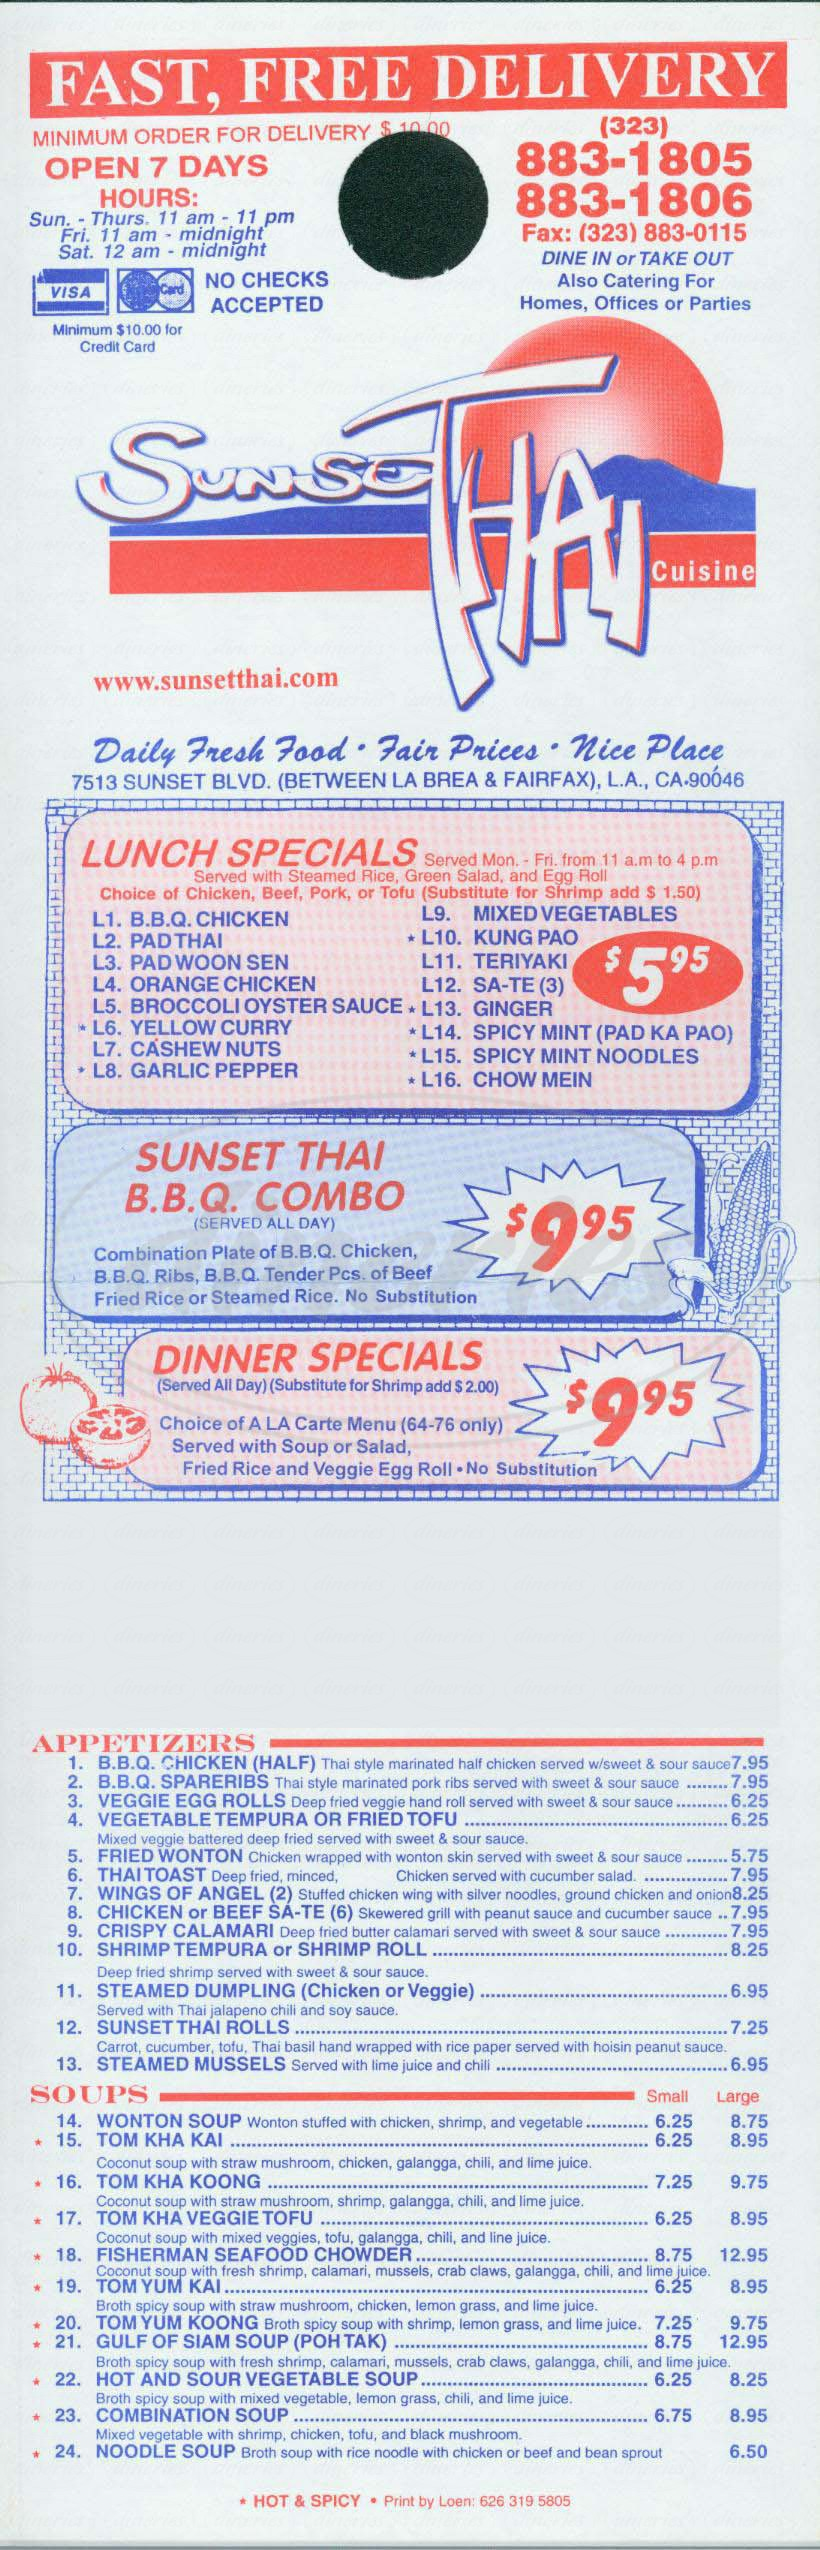 menu for Sunset Thai Cuisine